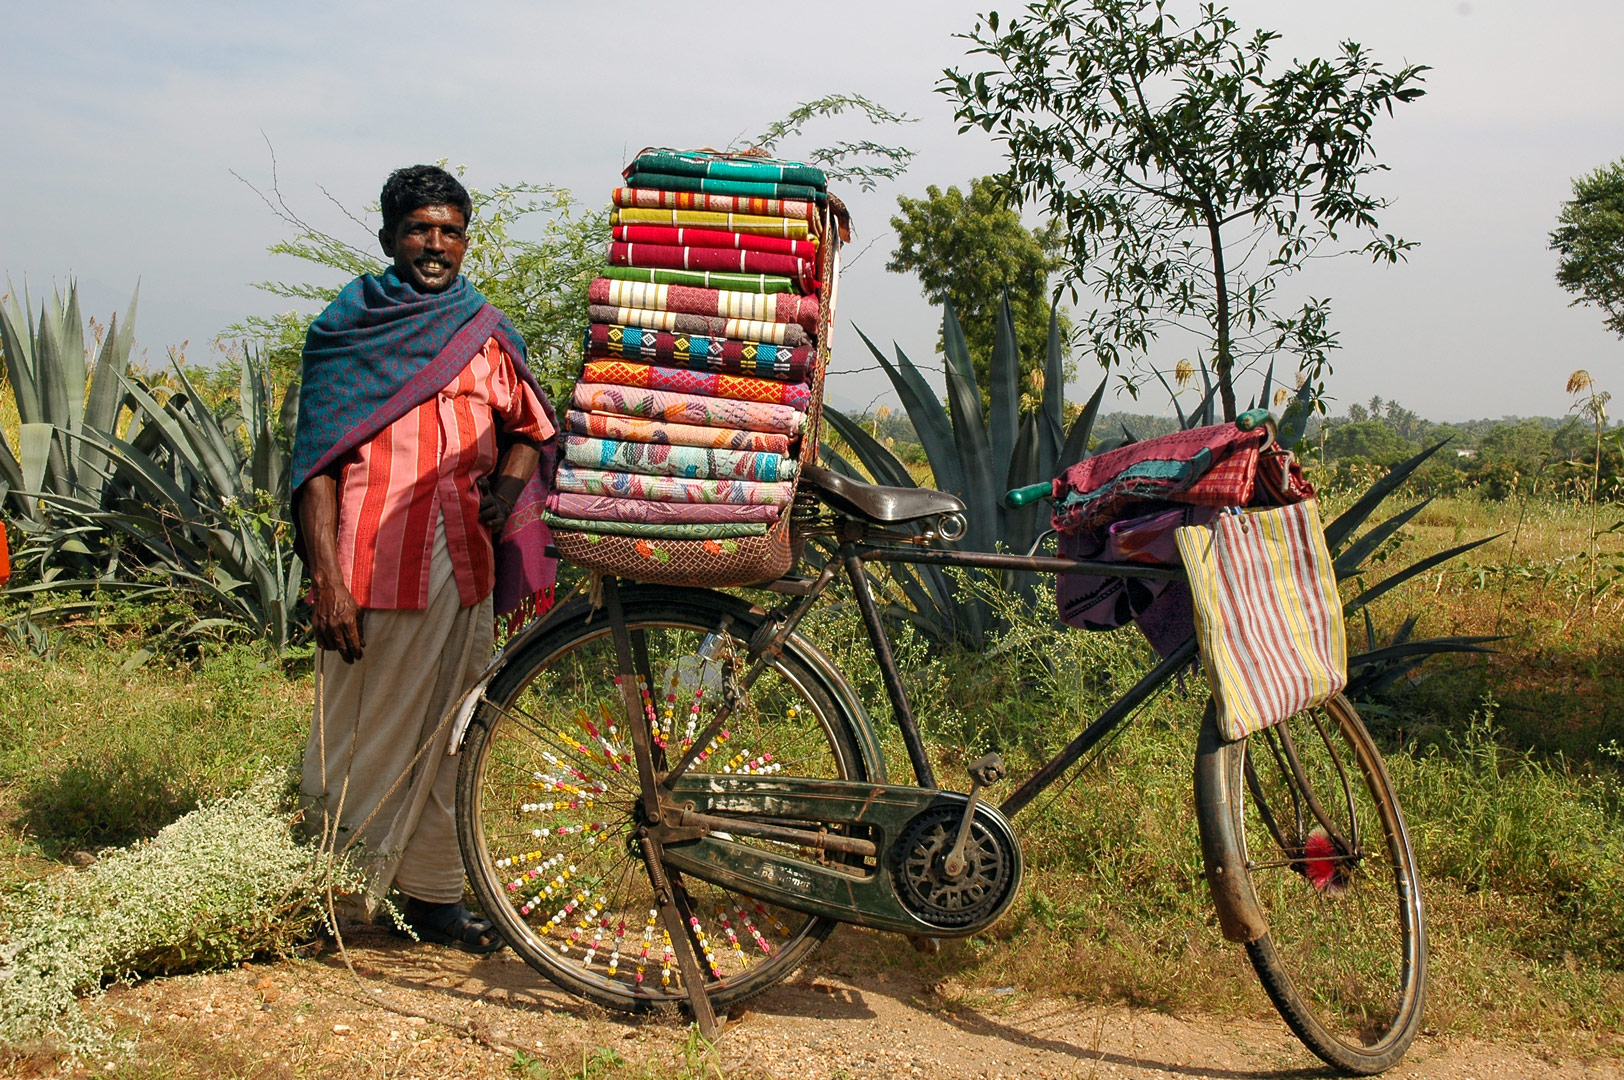 A cycling cloth salesman in South India